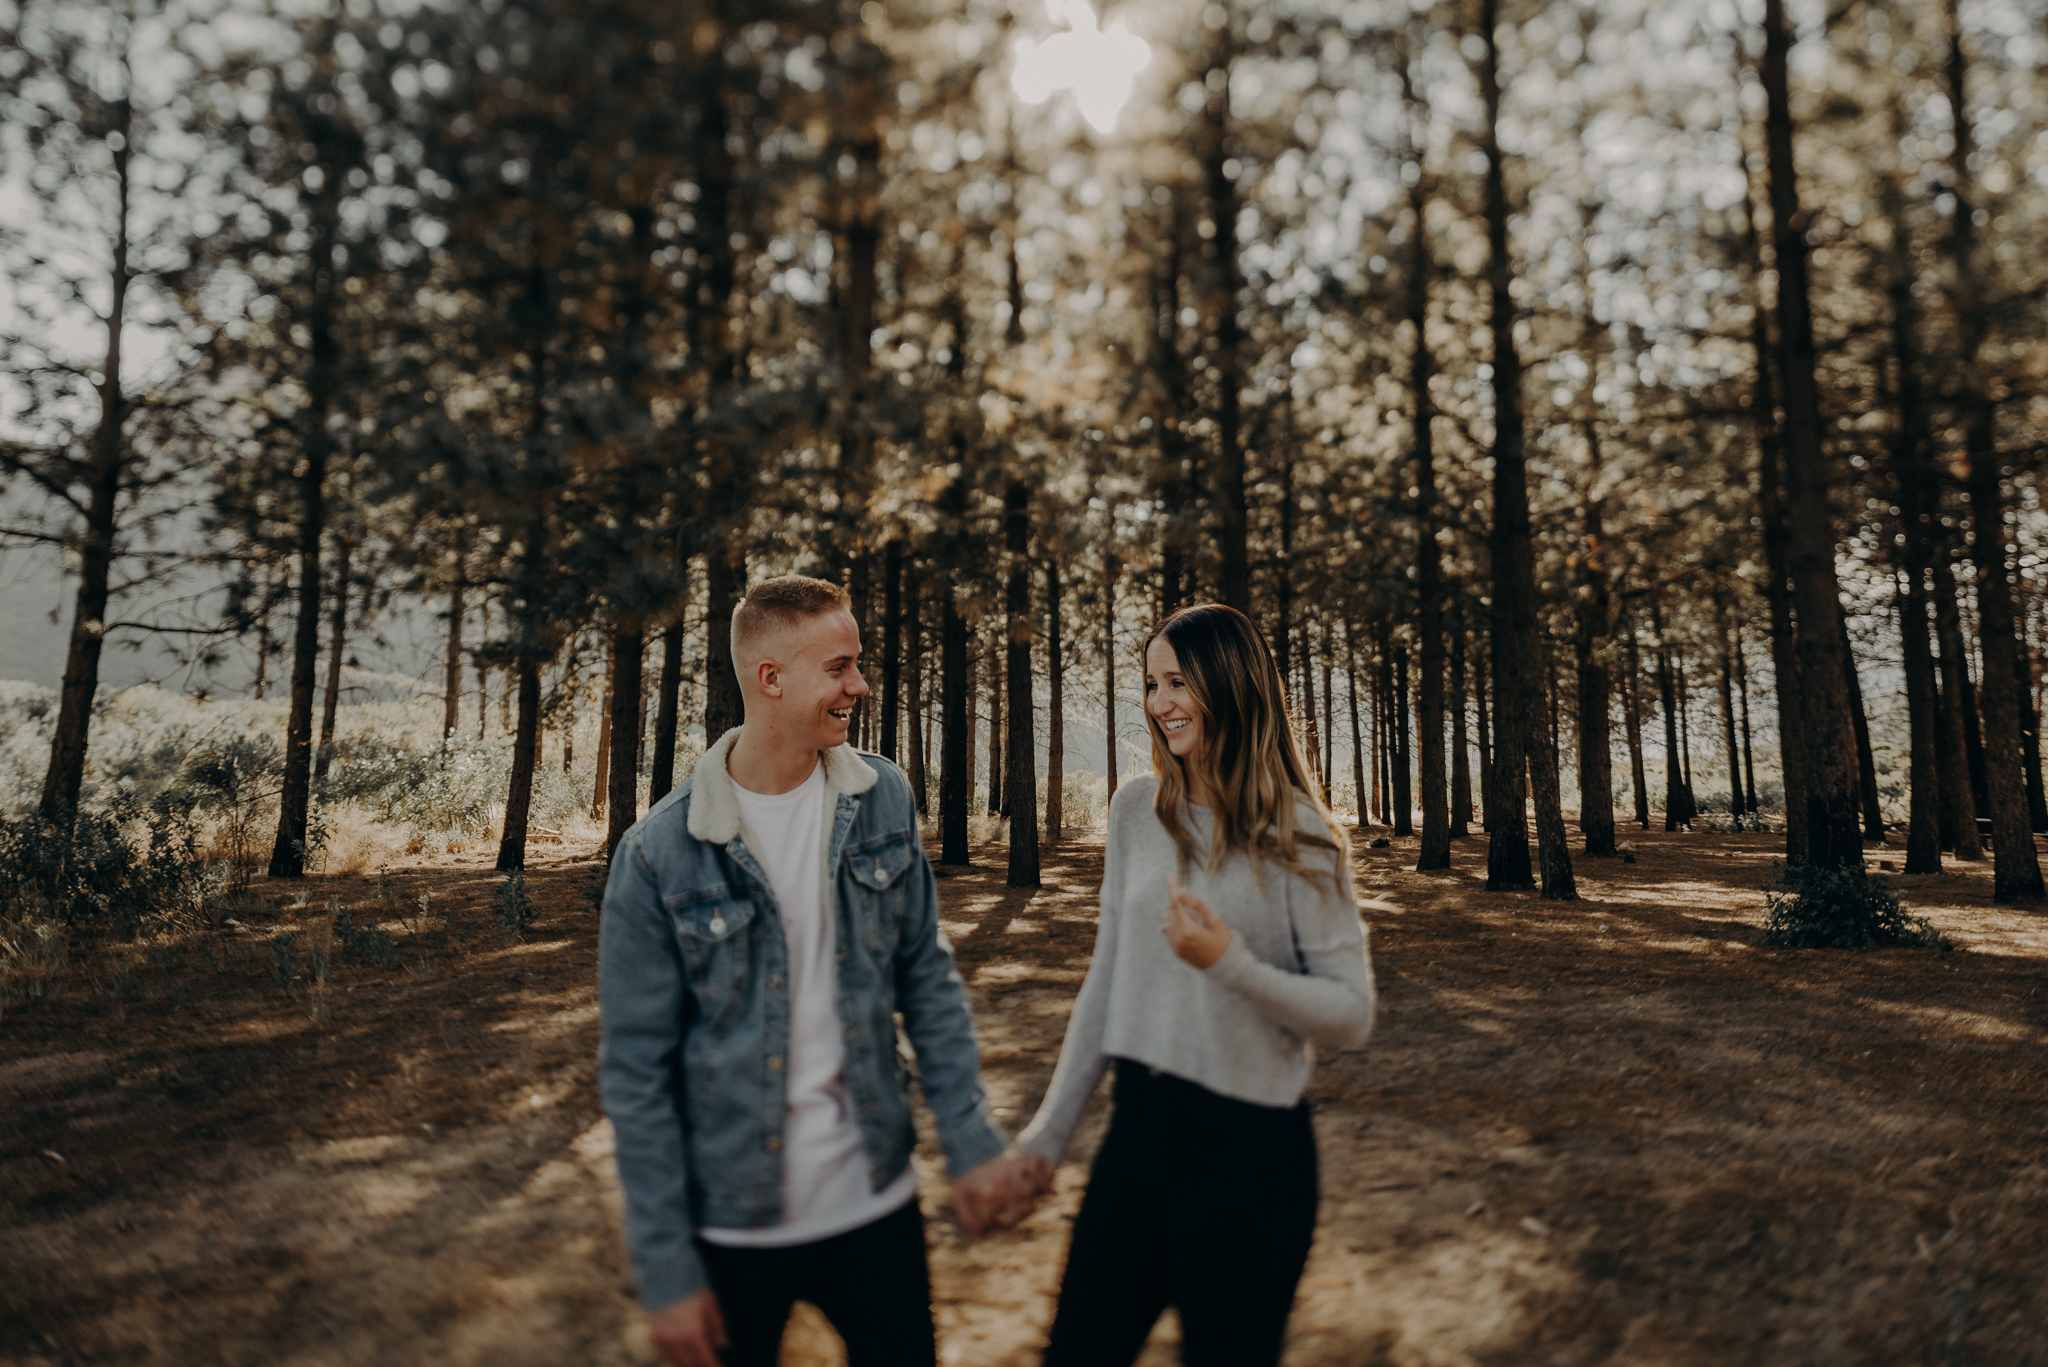 Isaiah + Taylor Photography - Los Angeles Forest Engagement, Laid-back Wedding Photographer-013.jpg